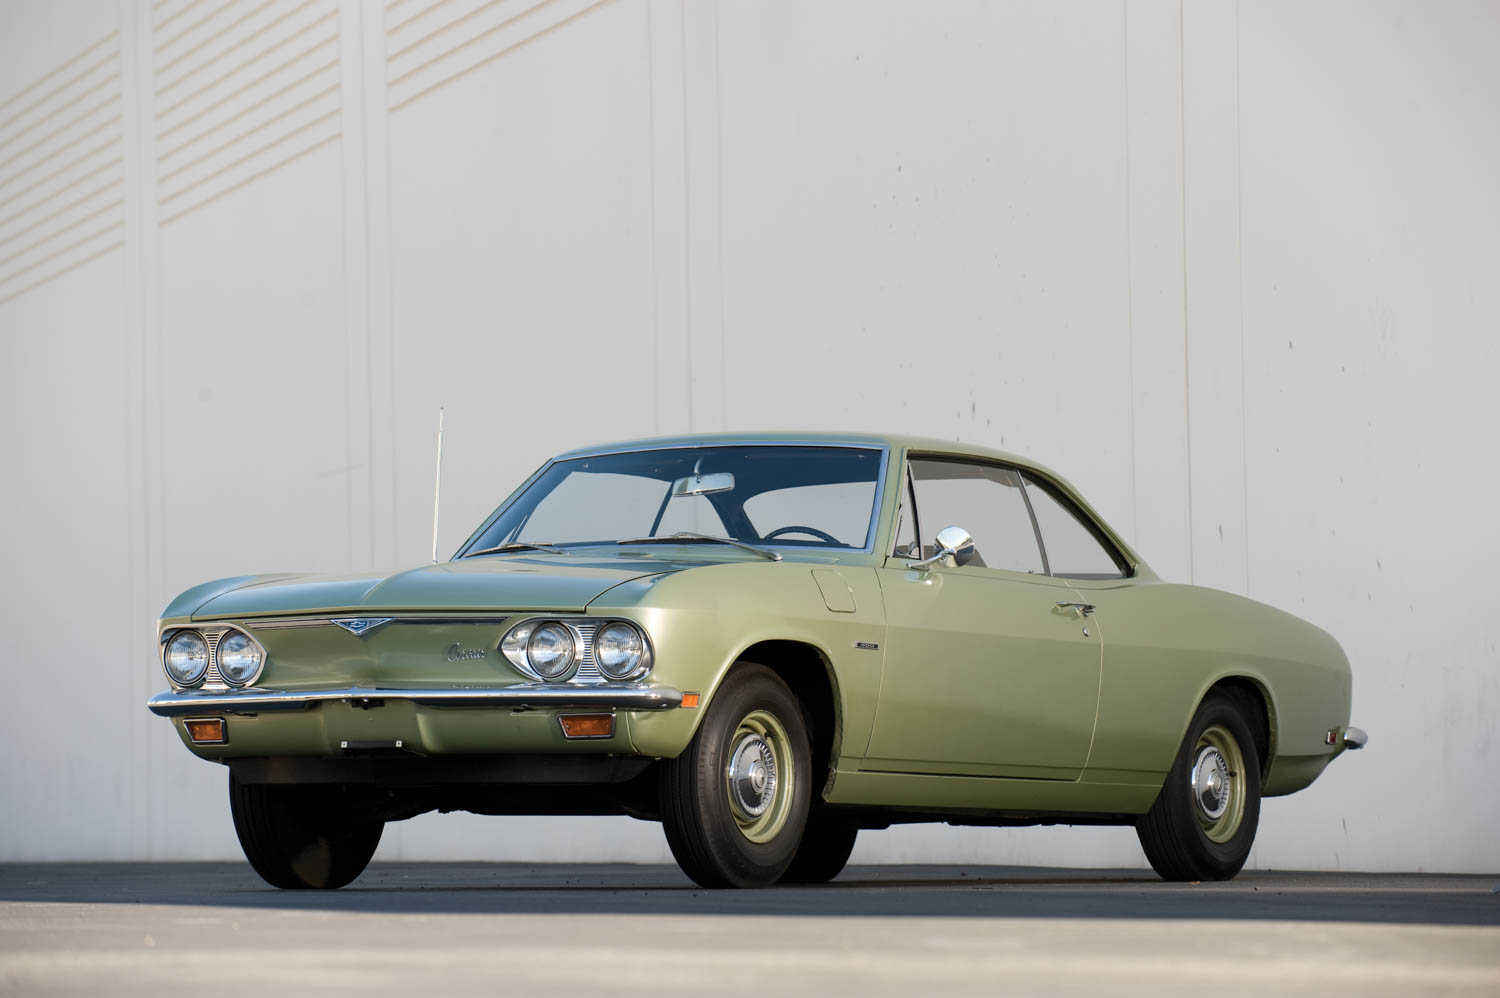 1969 Chevrolet Corvair 500 Sport Coupe